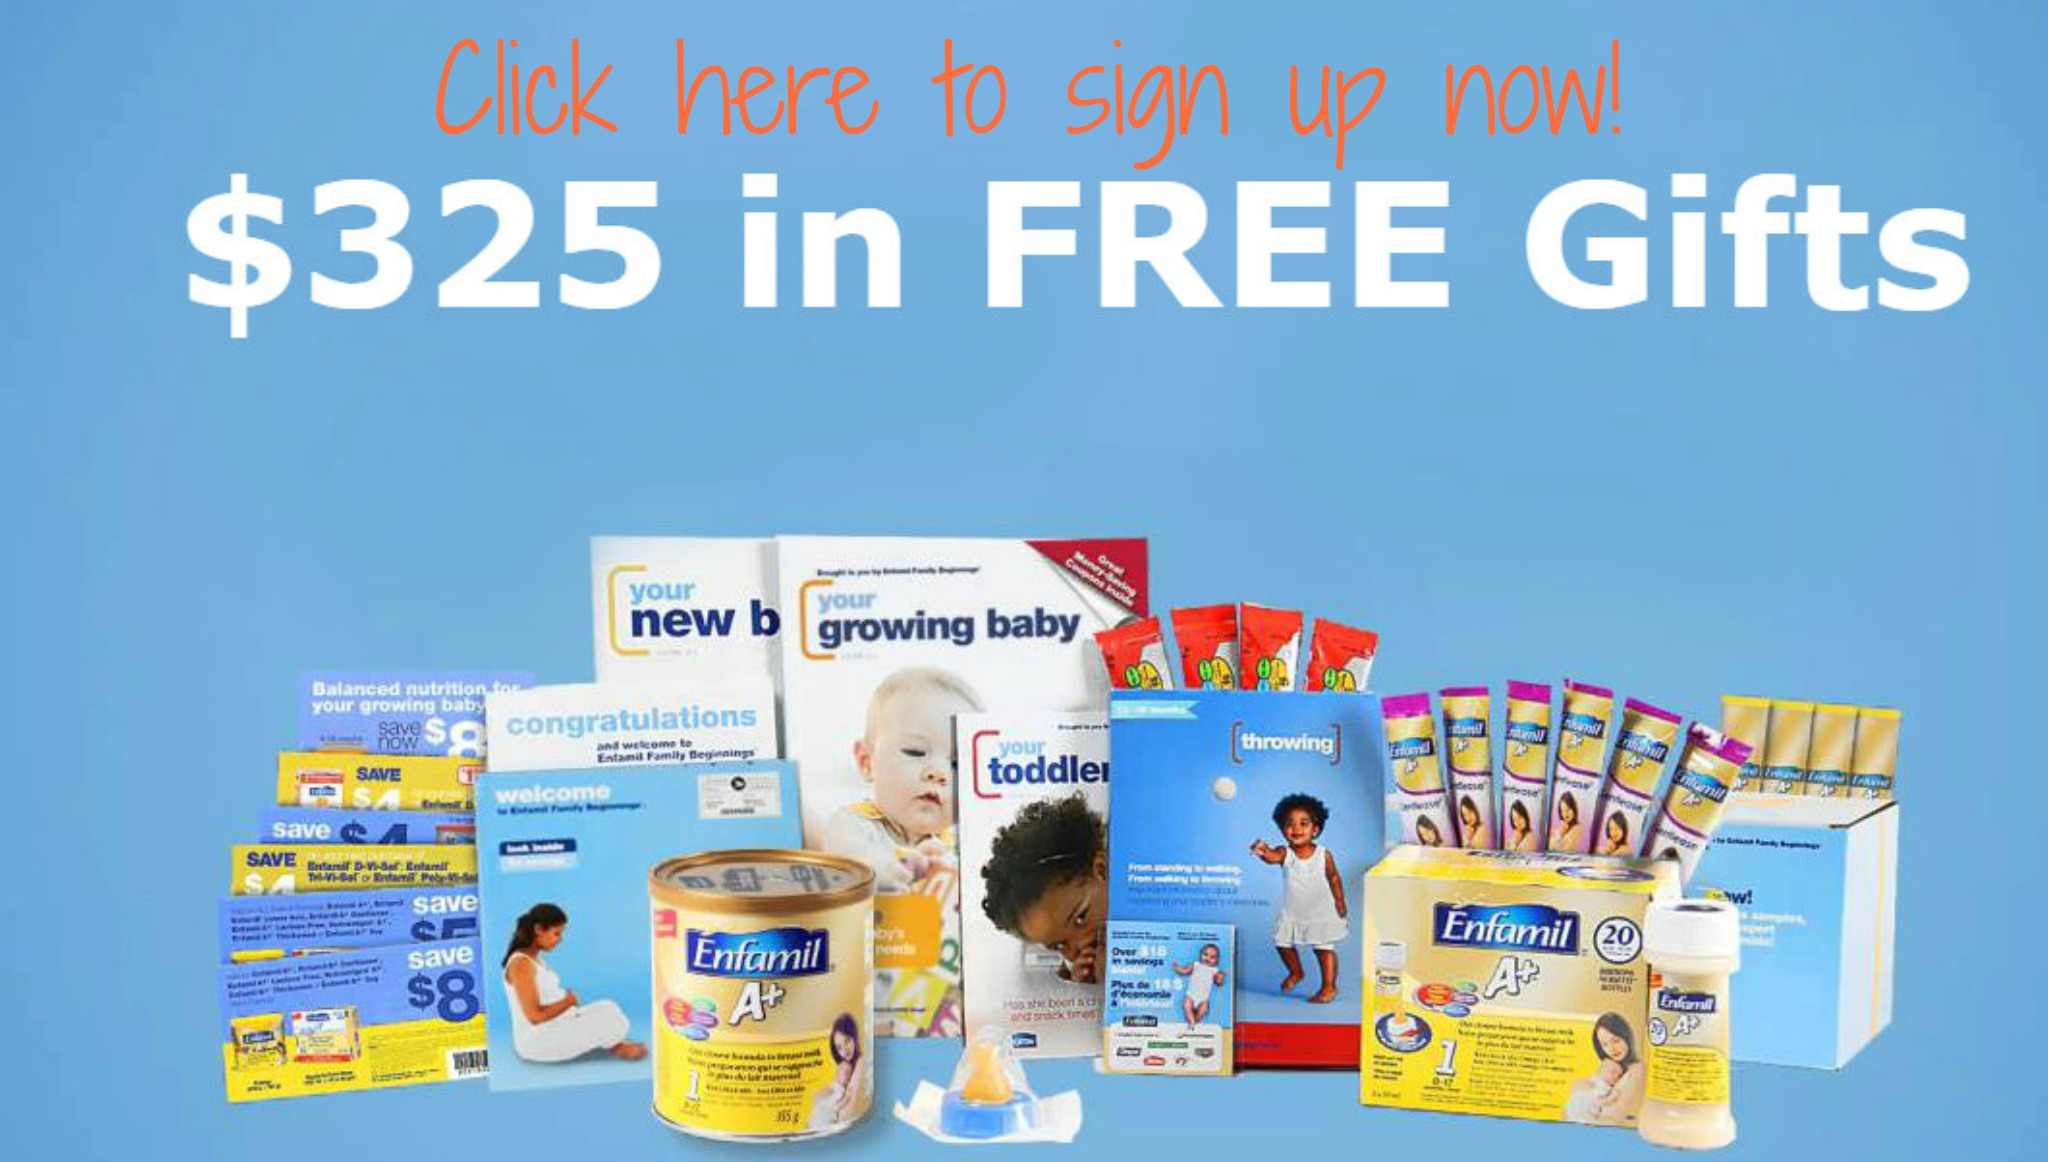 Expectant or new mom? Join Enfamil Family Beginnings and receive $325 in free gifts